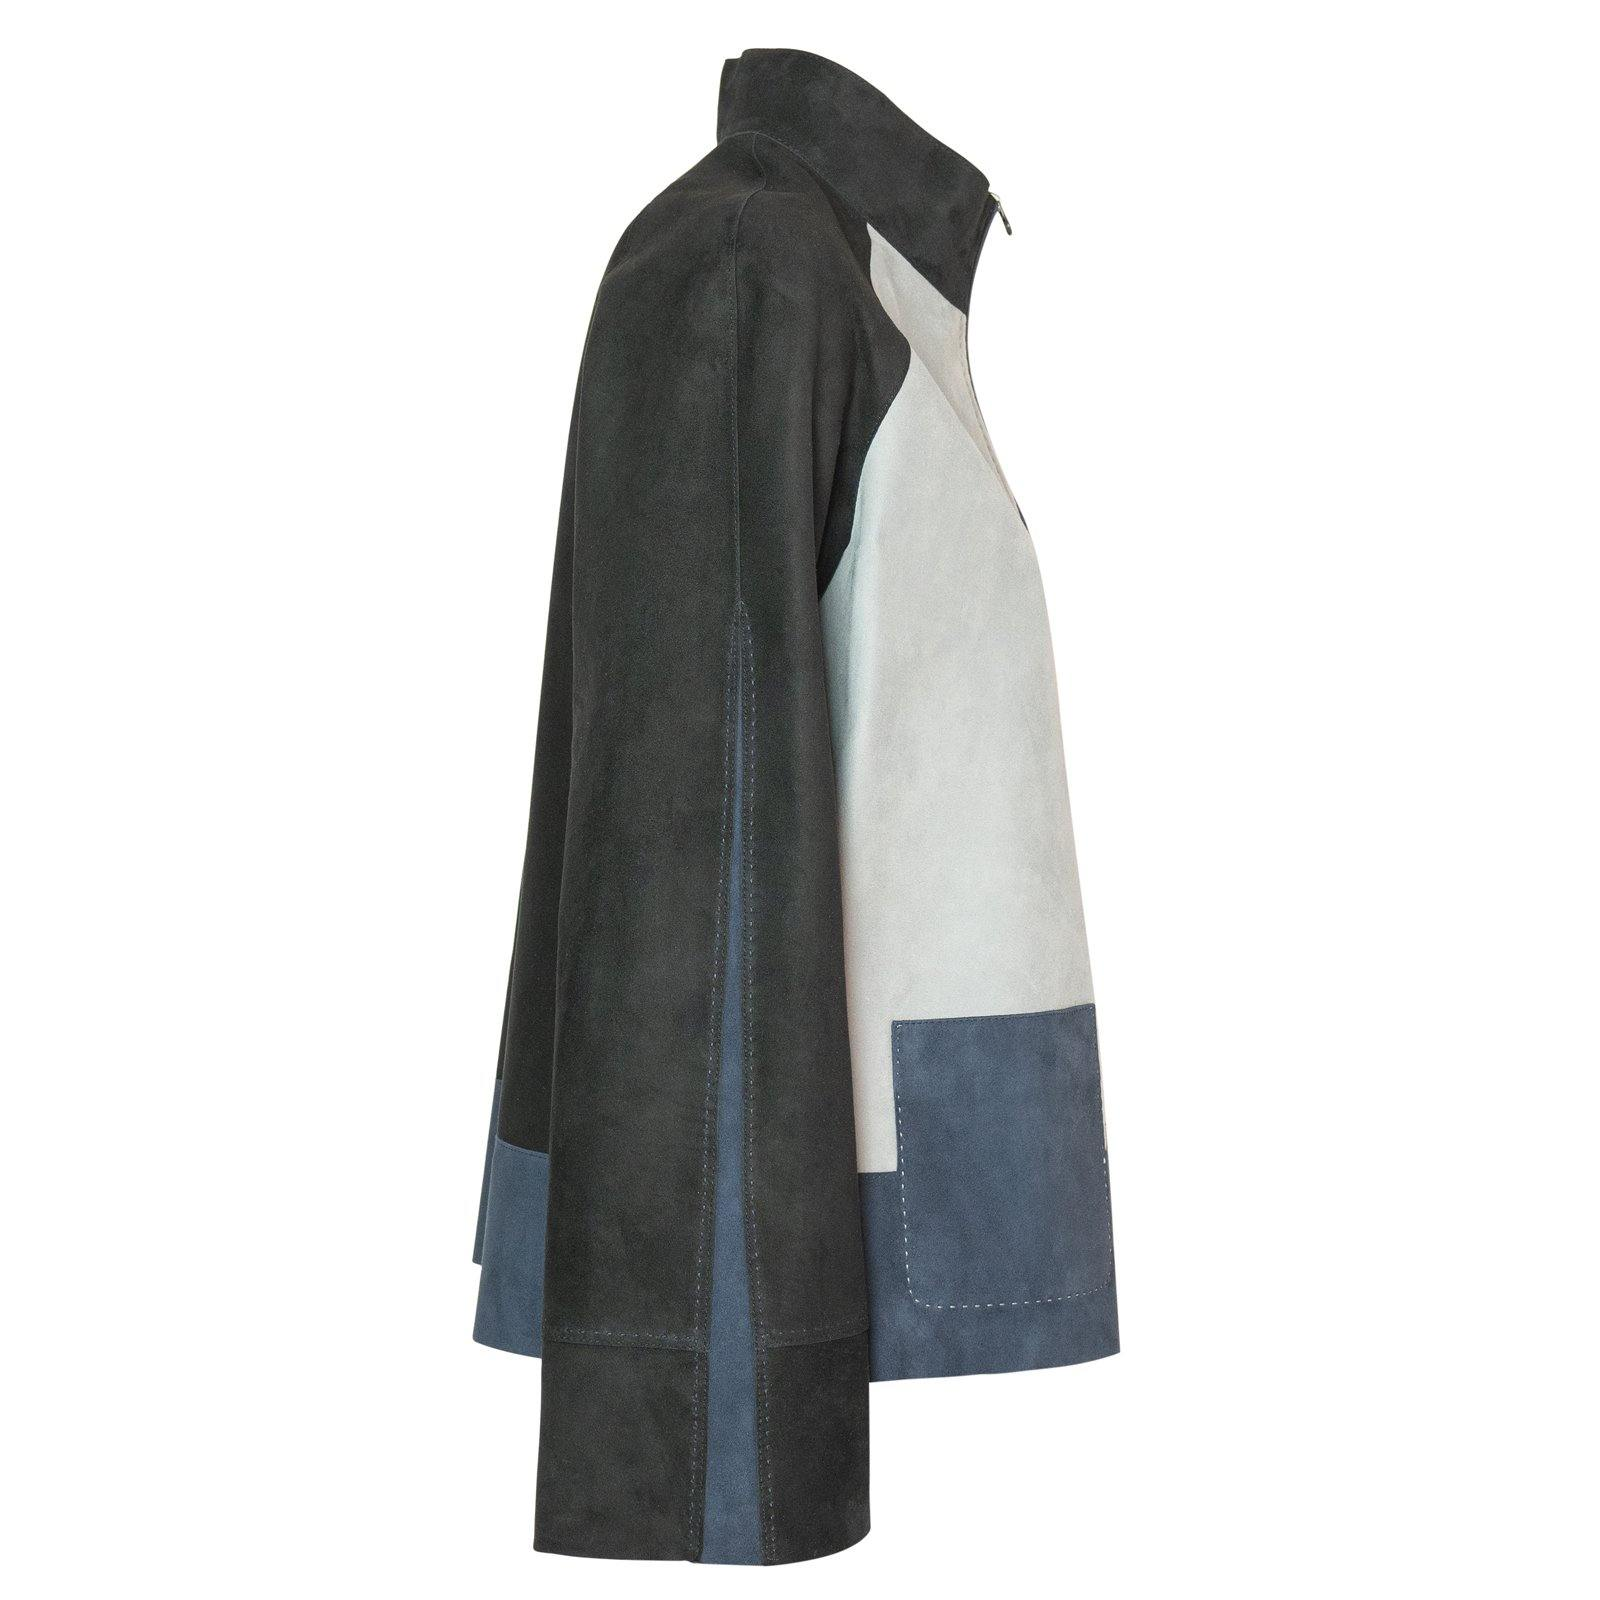 HEPBURN Reversible Leather Jacket in Black, Pearl Grey and Blue